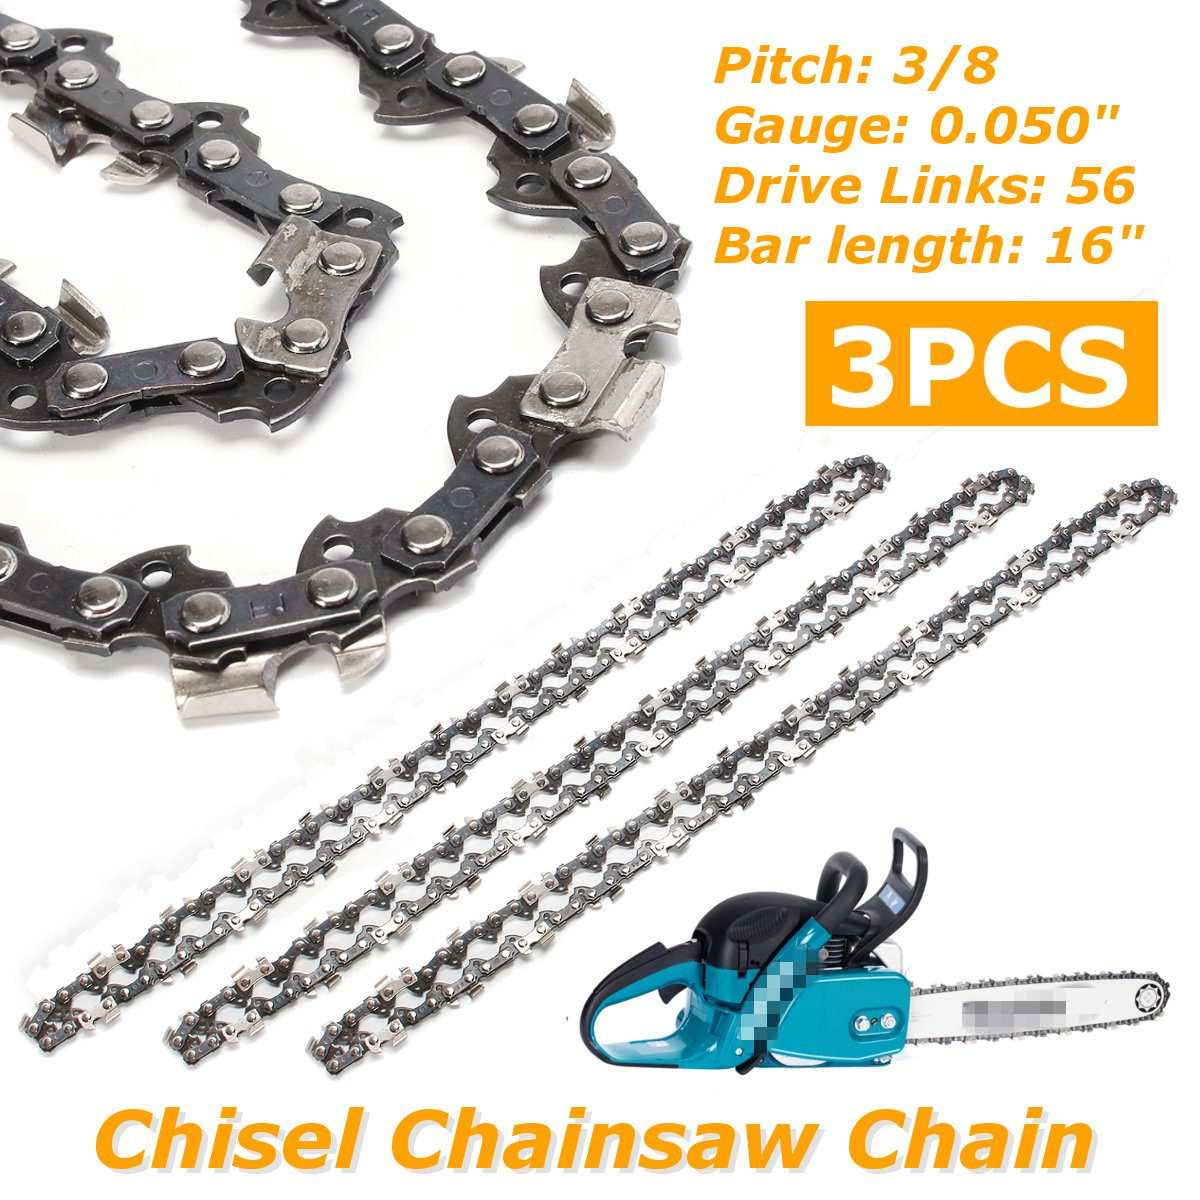 "3Pcs 16"" Bar Chainsaw Chain Semi Chisel 3/8 0.050"" 56 DL for Makita Chainsaw Structural alloy steel"